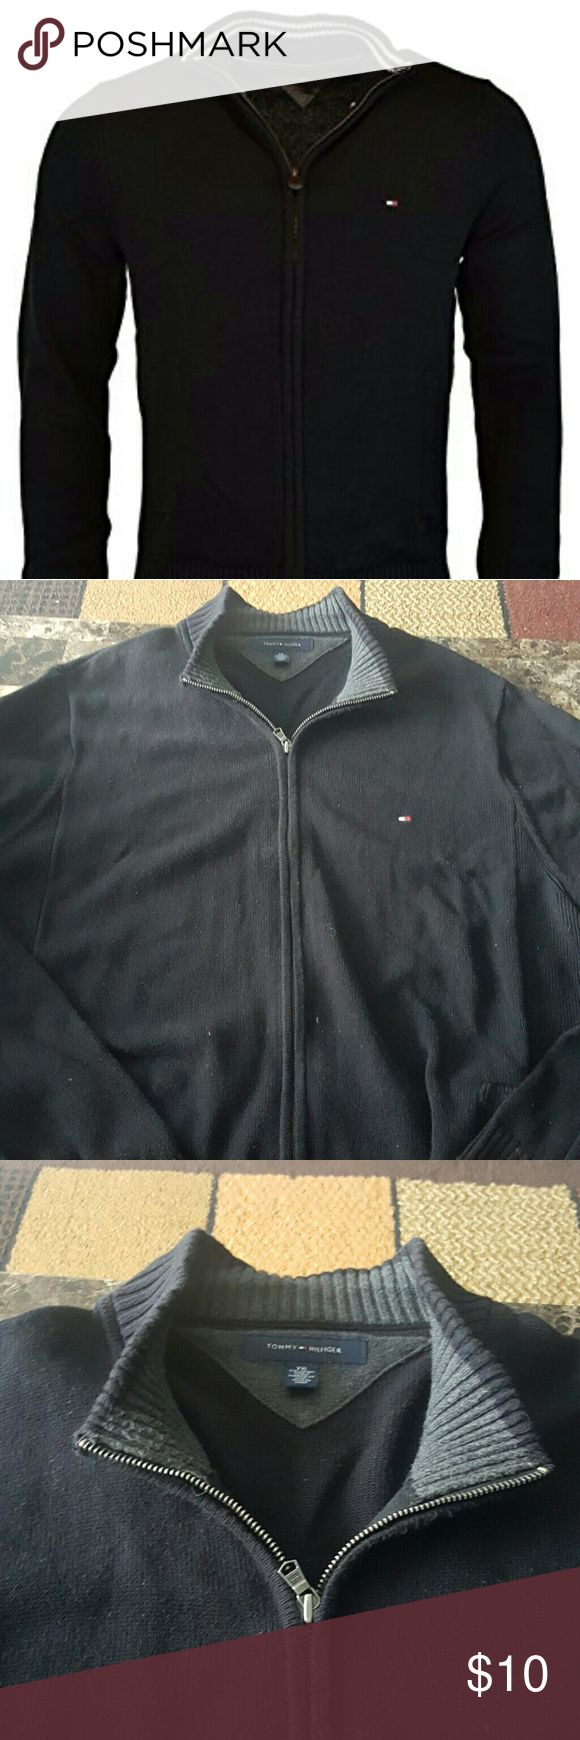 Tommy Hilfiger zip up sweater Black zip up sweater,  long sleeve does have a tear along the pocket, can be sowed back up for anyone that knows how, orther than that its in great condition the black photographs dull but its still a bright black FIRST PICTURE JUST A LOOK A LIKE SIMILIR DESIGN Tommy Hilfiger Sweaters Zip Up